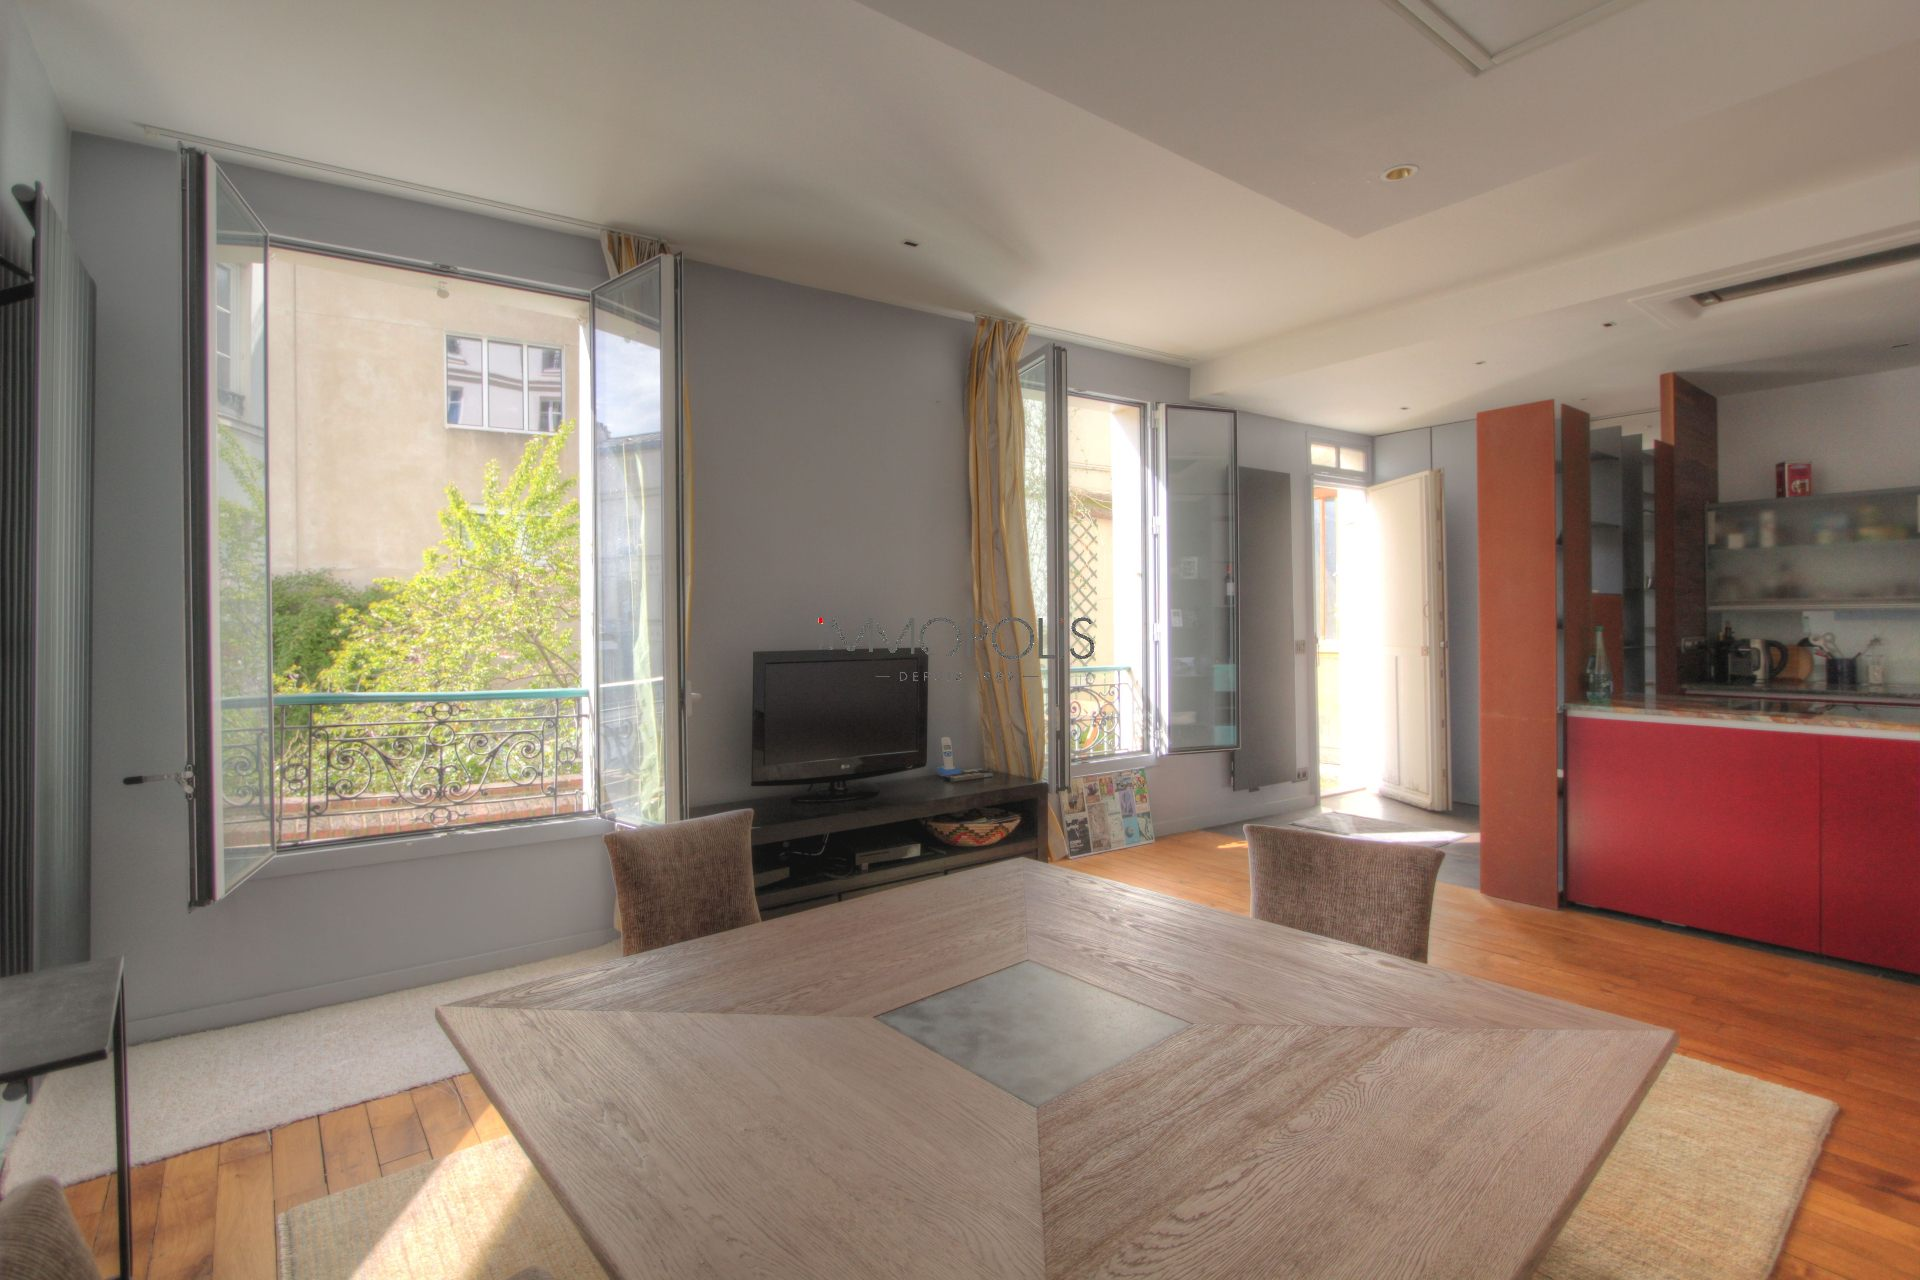 Exceptional in Montmartre (rue Gabrielle): refurbished open space, sumptuous fittings, with balcony and open view! 4